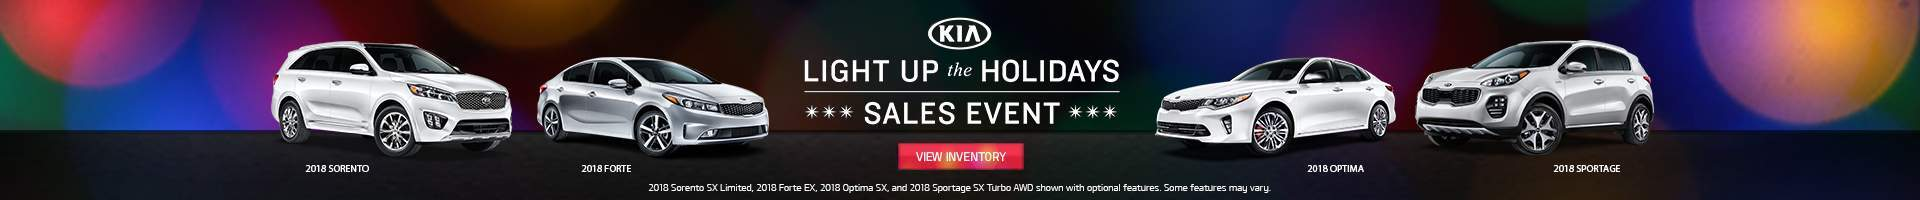 Kia Light Up The Holidays Year End Sales Event